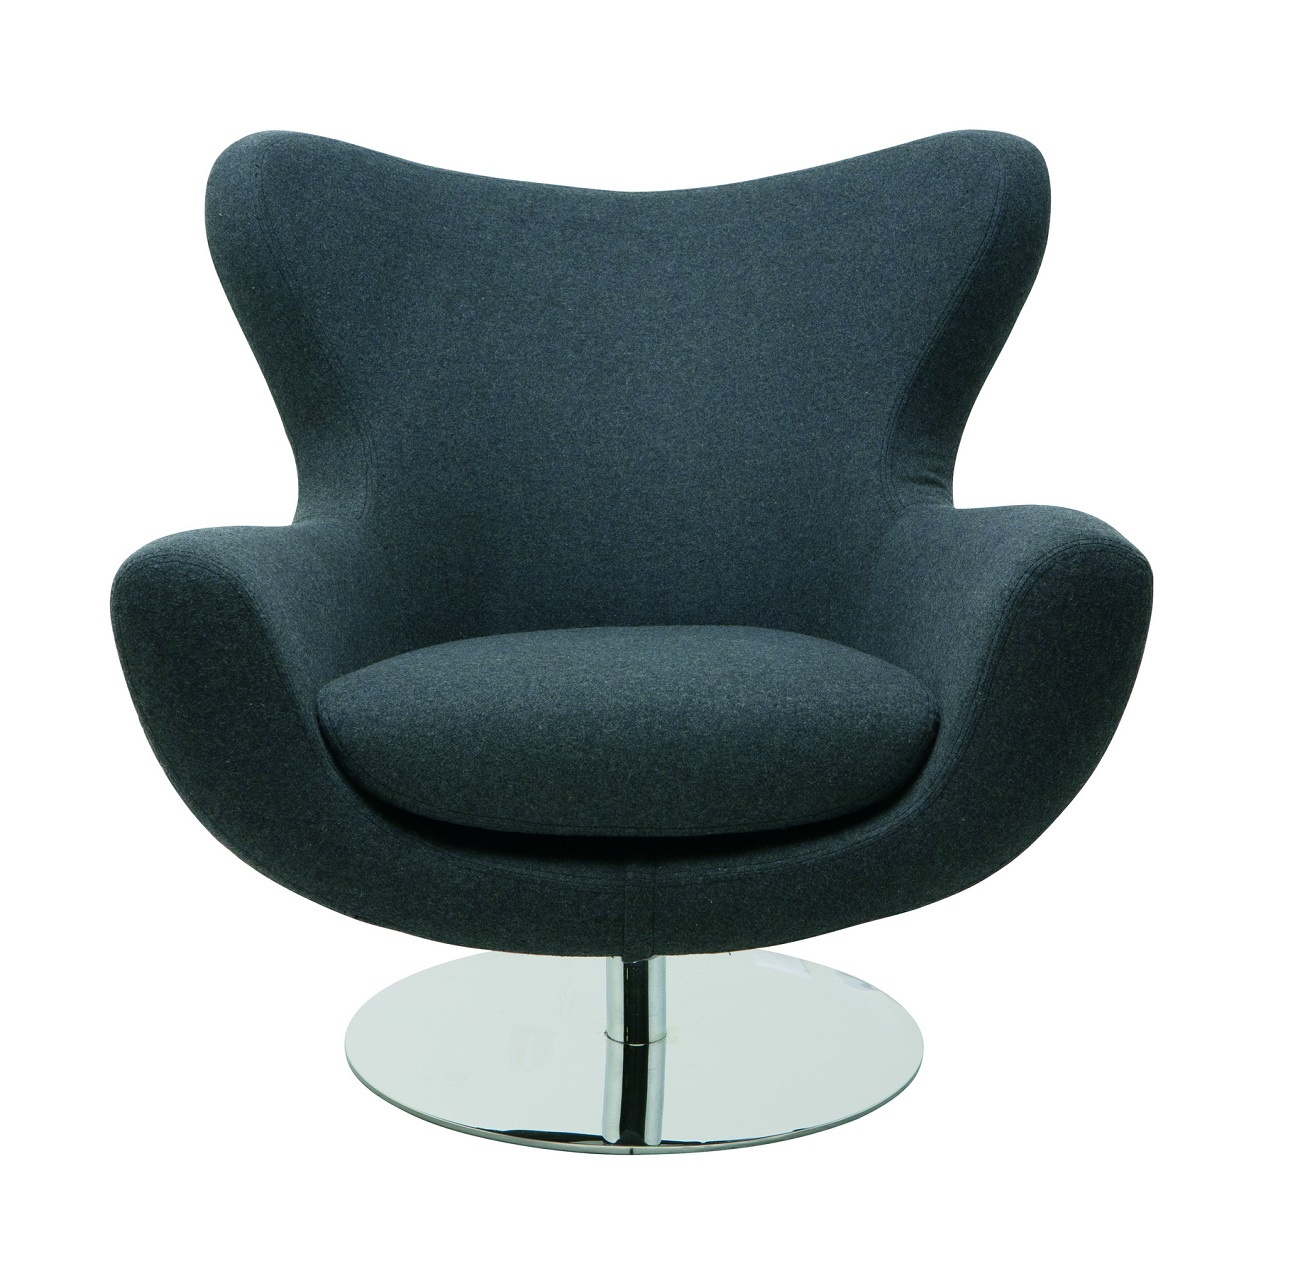 Nuevo Living Chairs, Nuevo Conner Occasional Chair